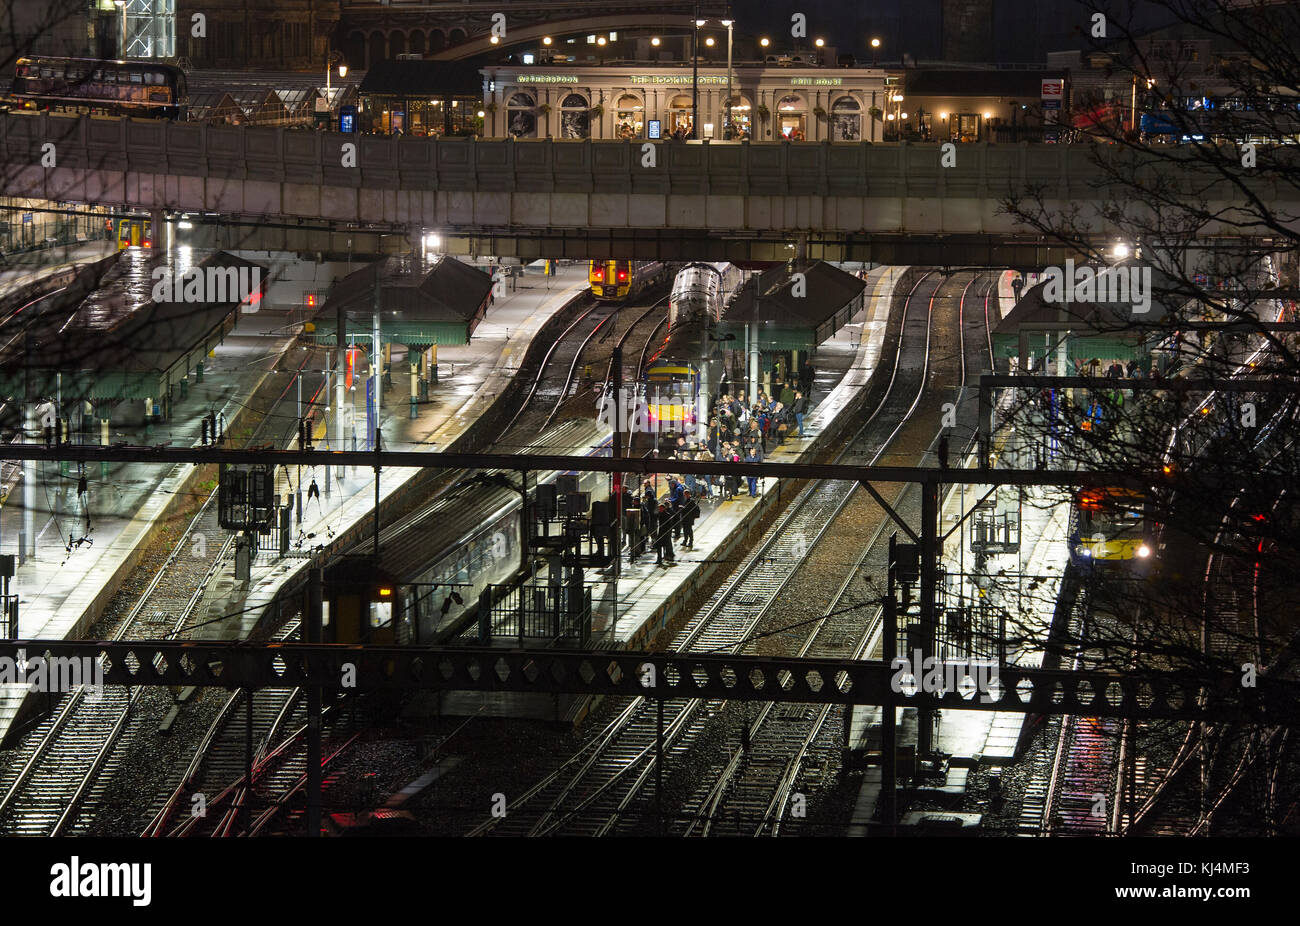 Passengers wait on the platform at  Waverley Station, Edinburgh - Stock Image